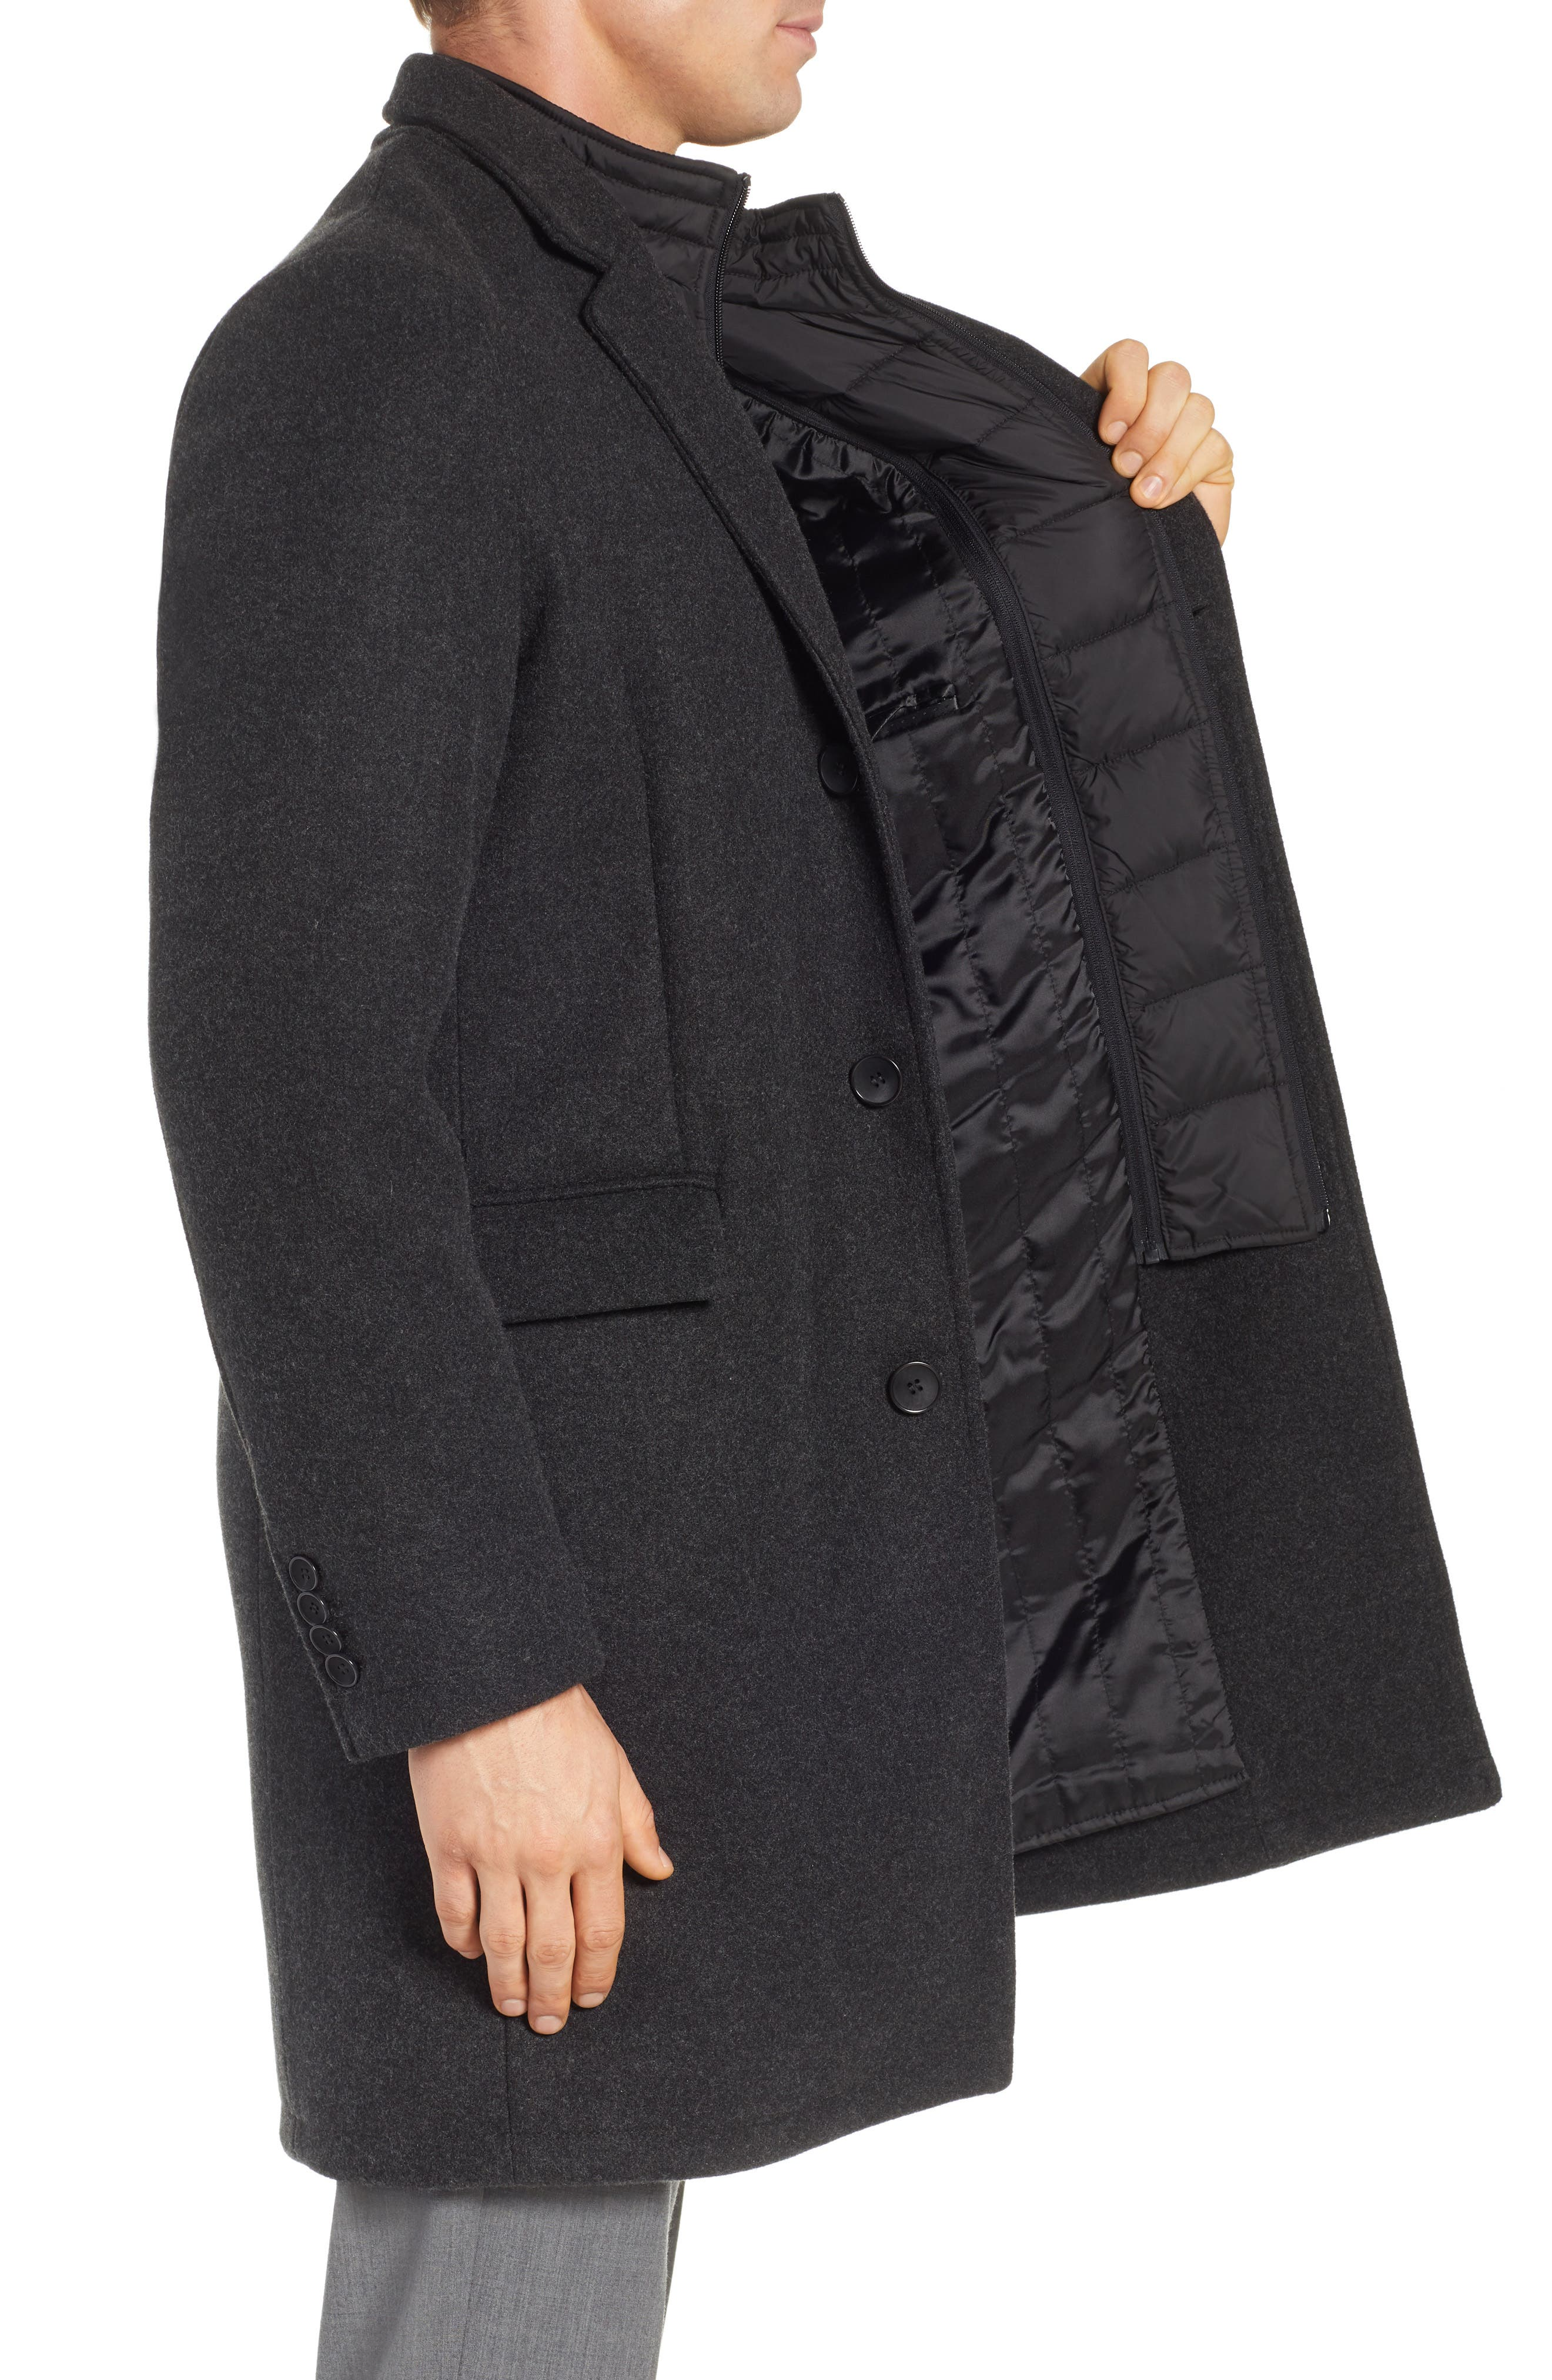 Westcott Wool Car Coat,                             Alternate thumbnail 3, color,                             001